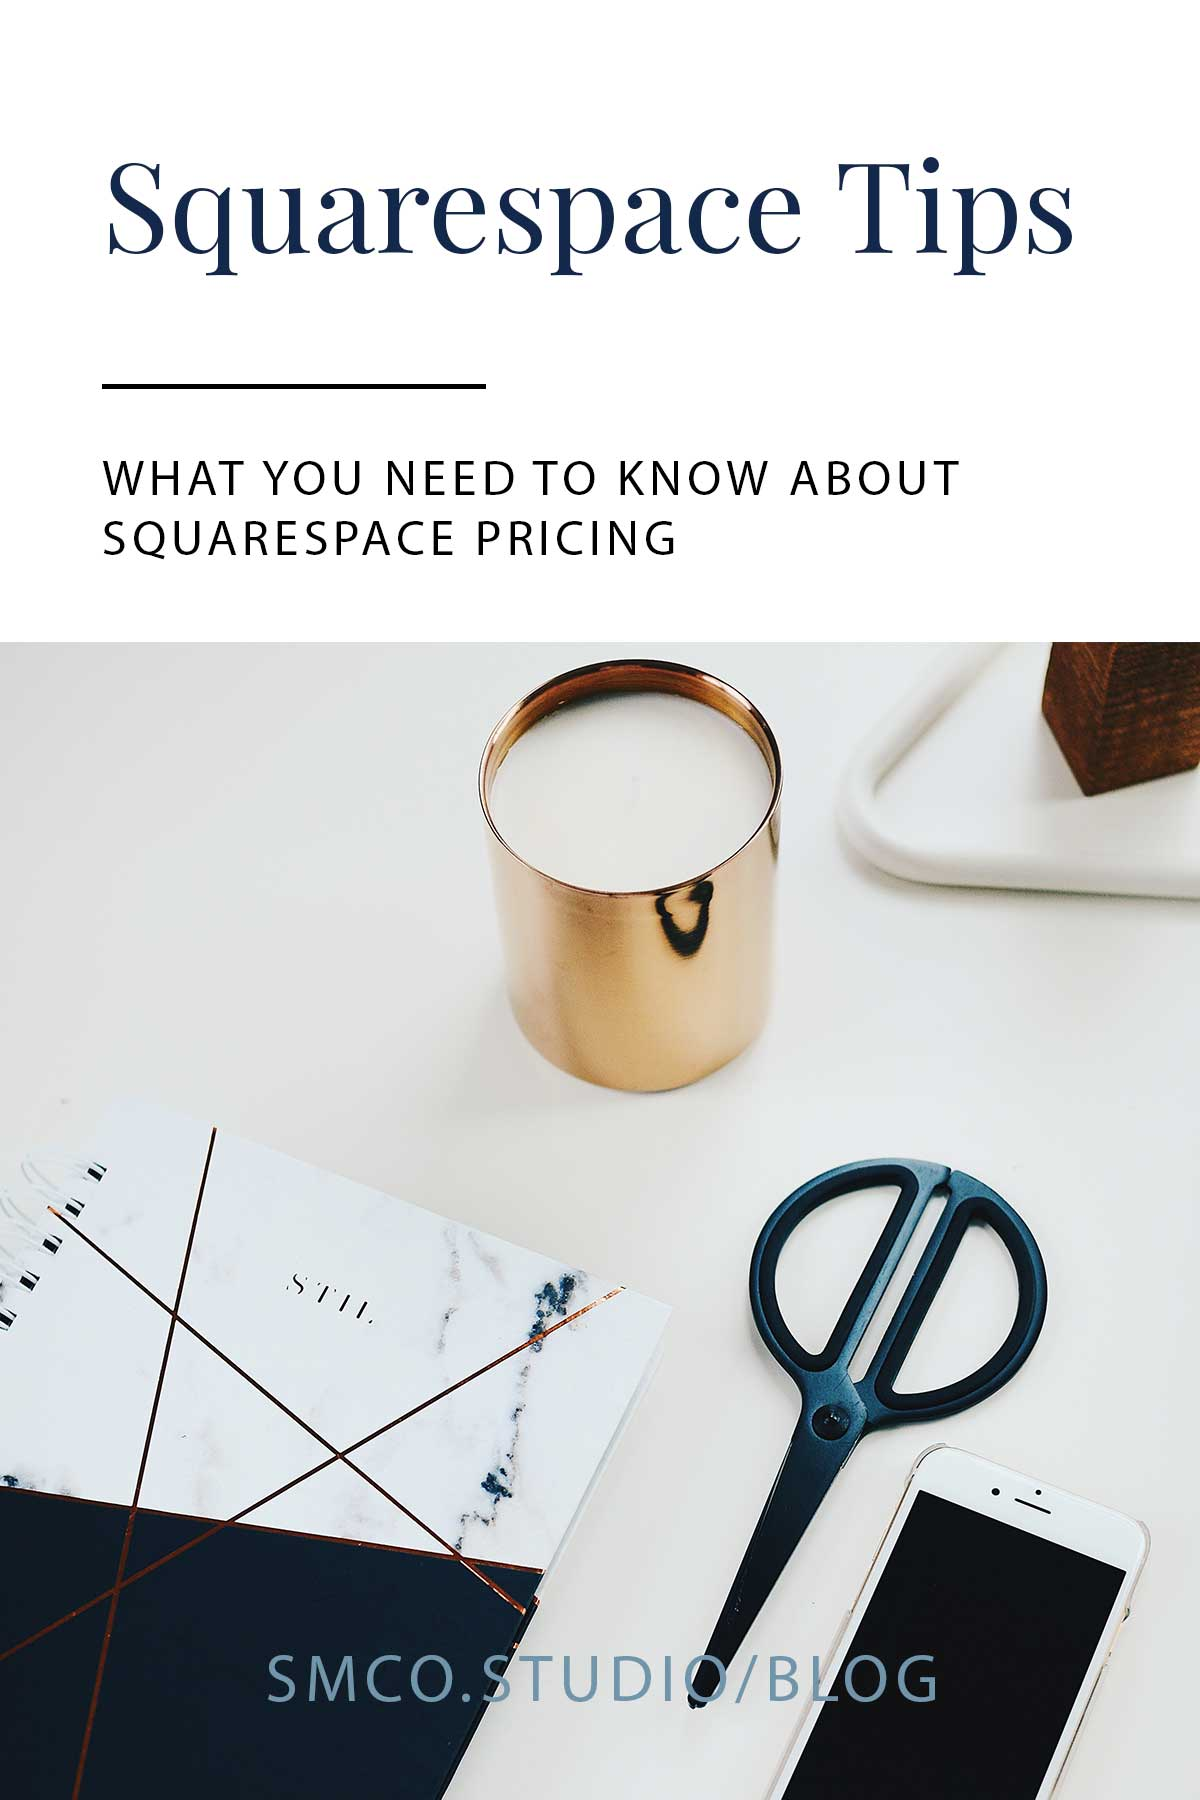 Squarespace Pricing - What you need to know from Sarah Moon + Co